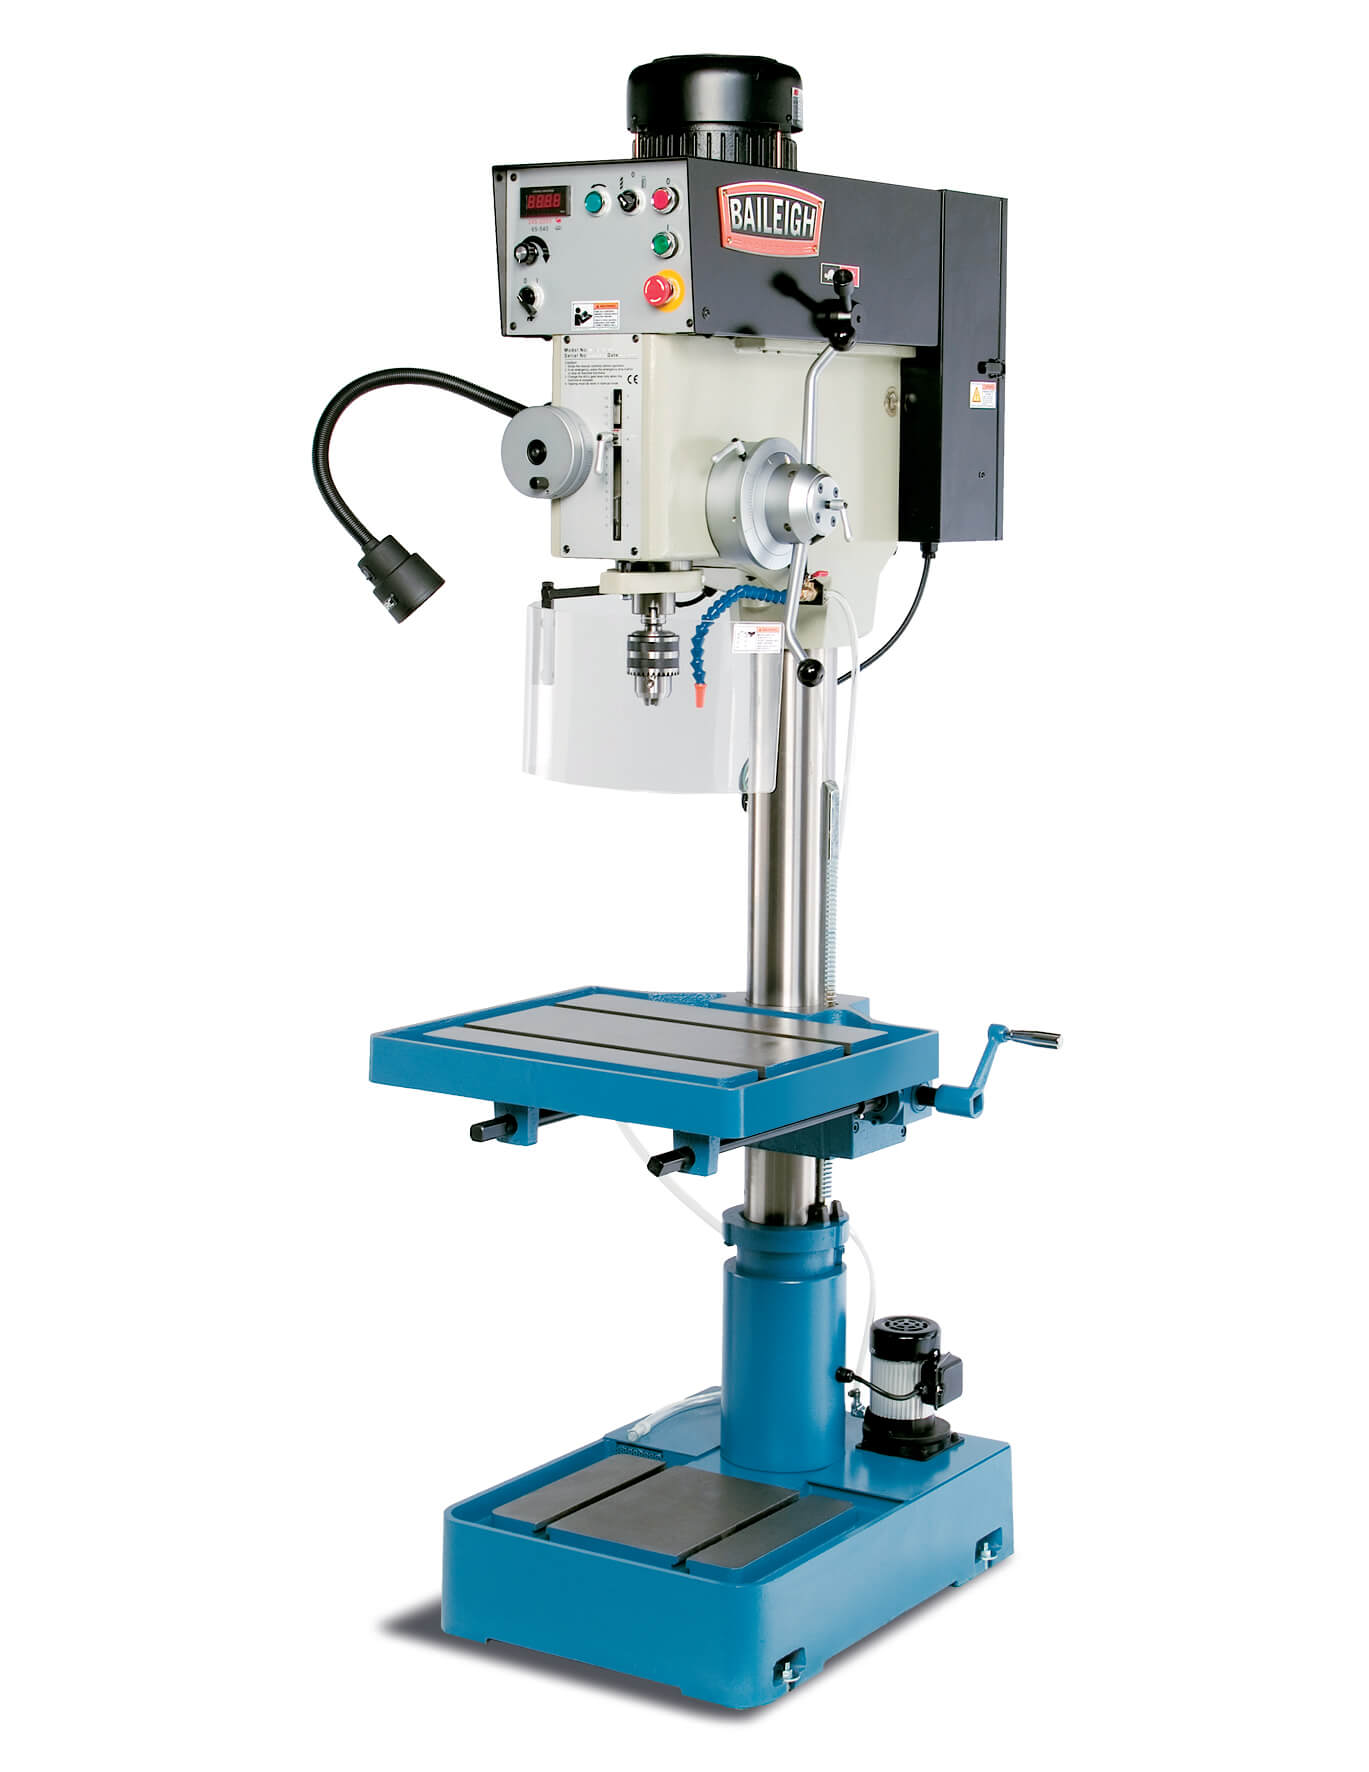 Baileigh Drill Press Variable Speed 1000VS